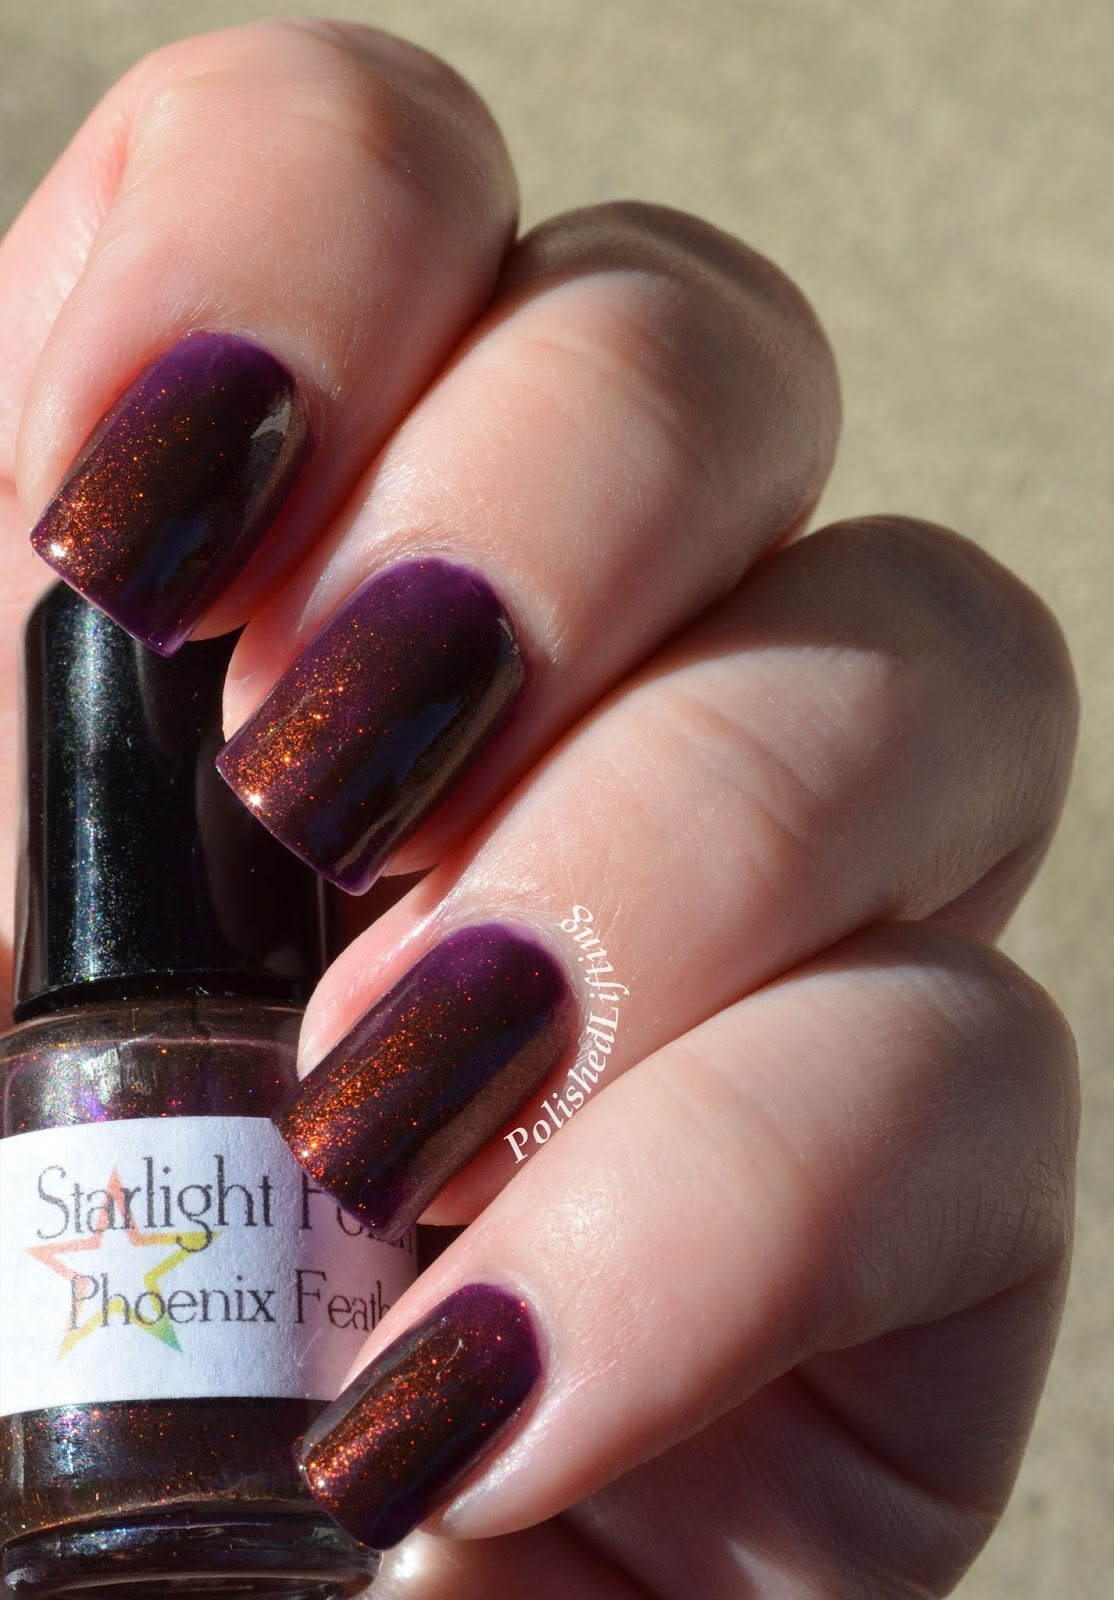 Starlight Polish Phoenix Feathers